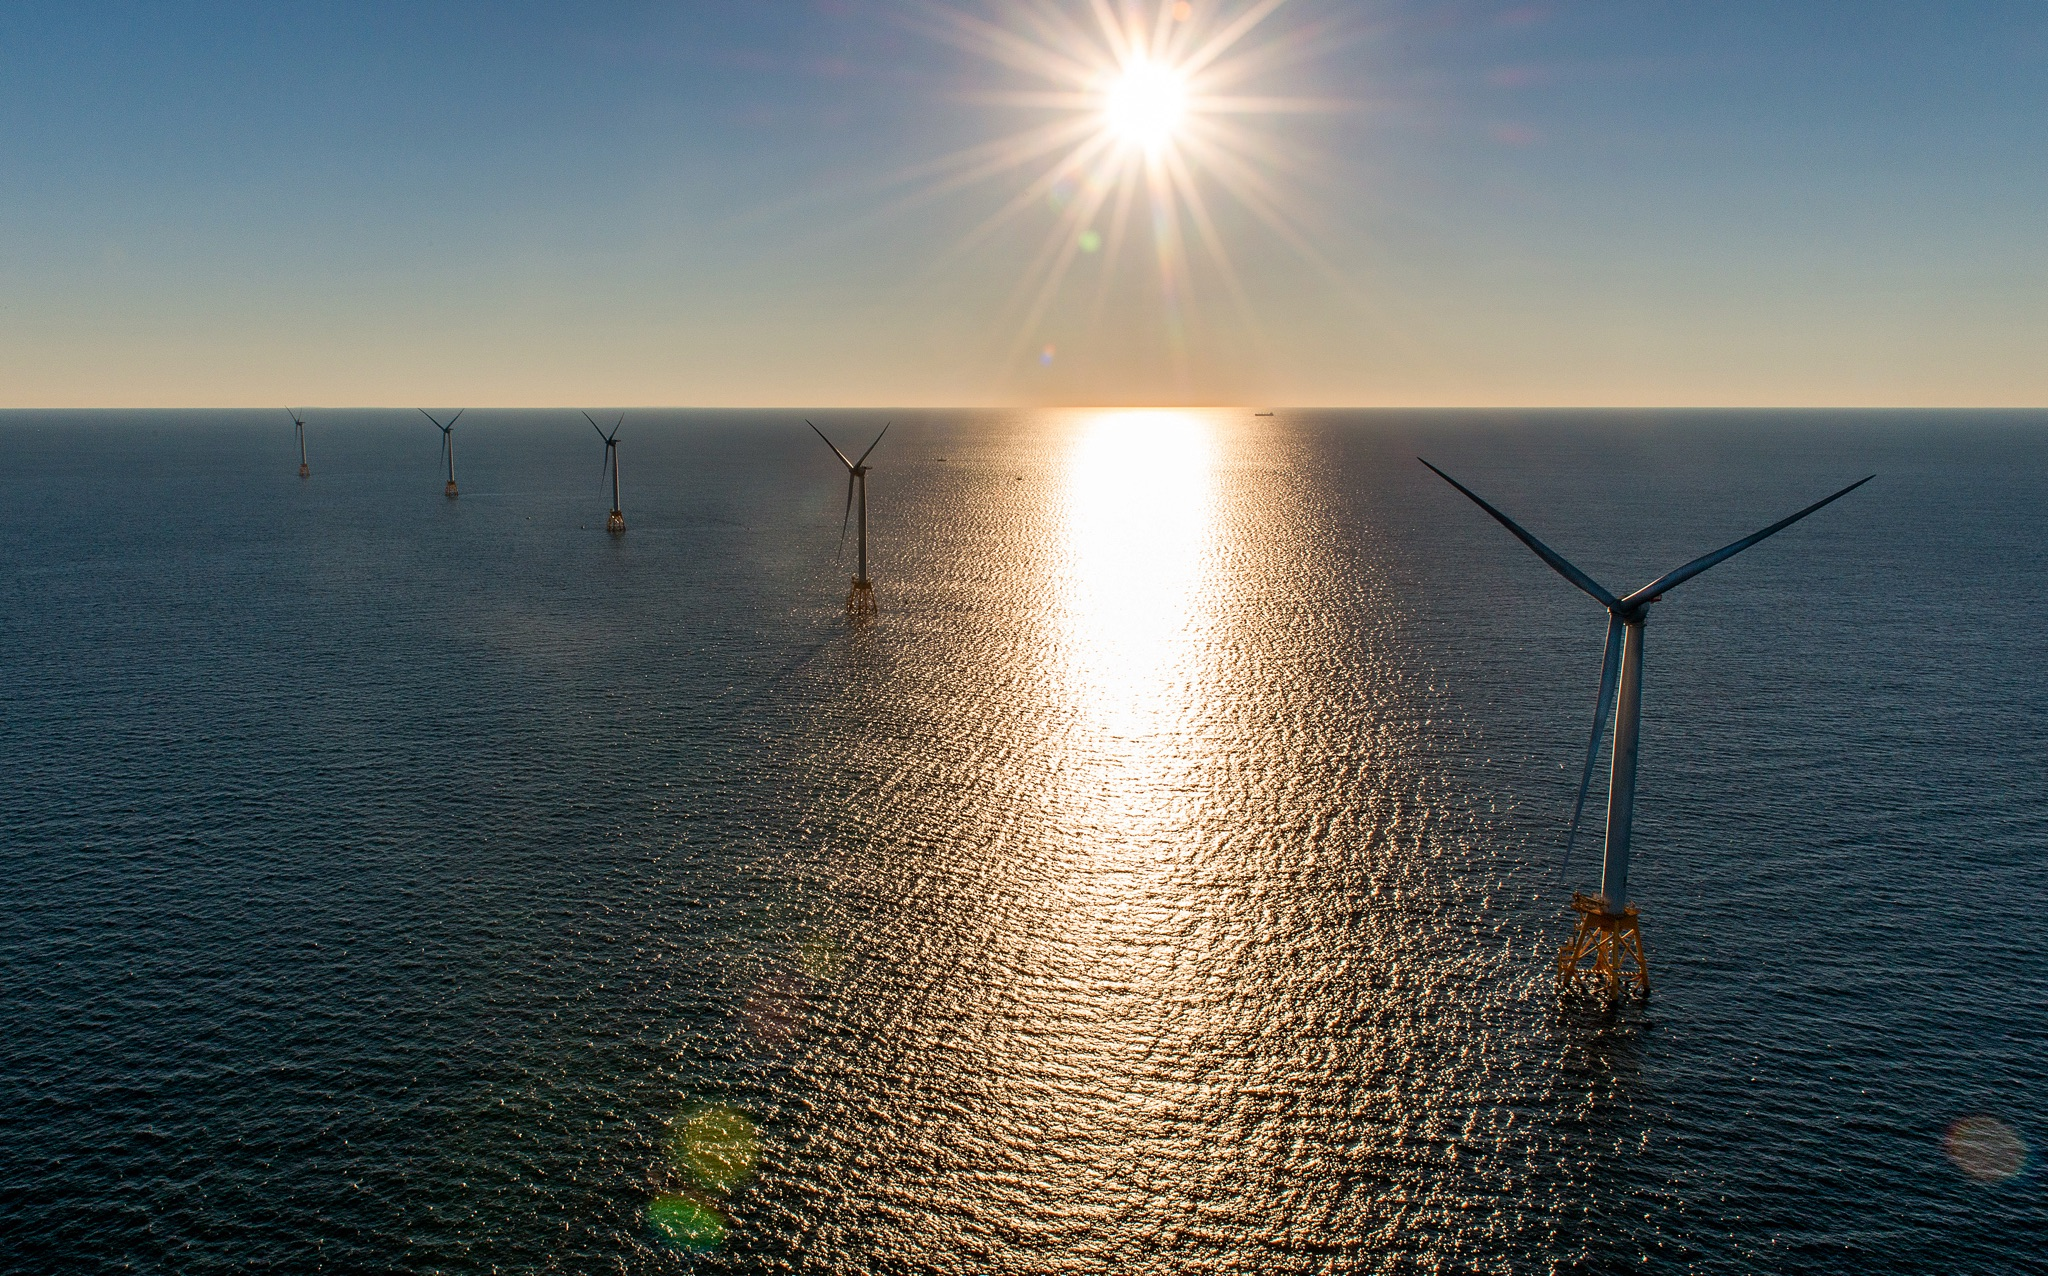 U.S. Wind Power Finally Gets Its Sea Legs - Science Friday